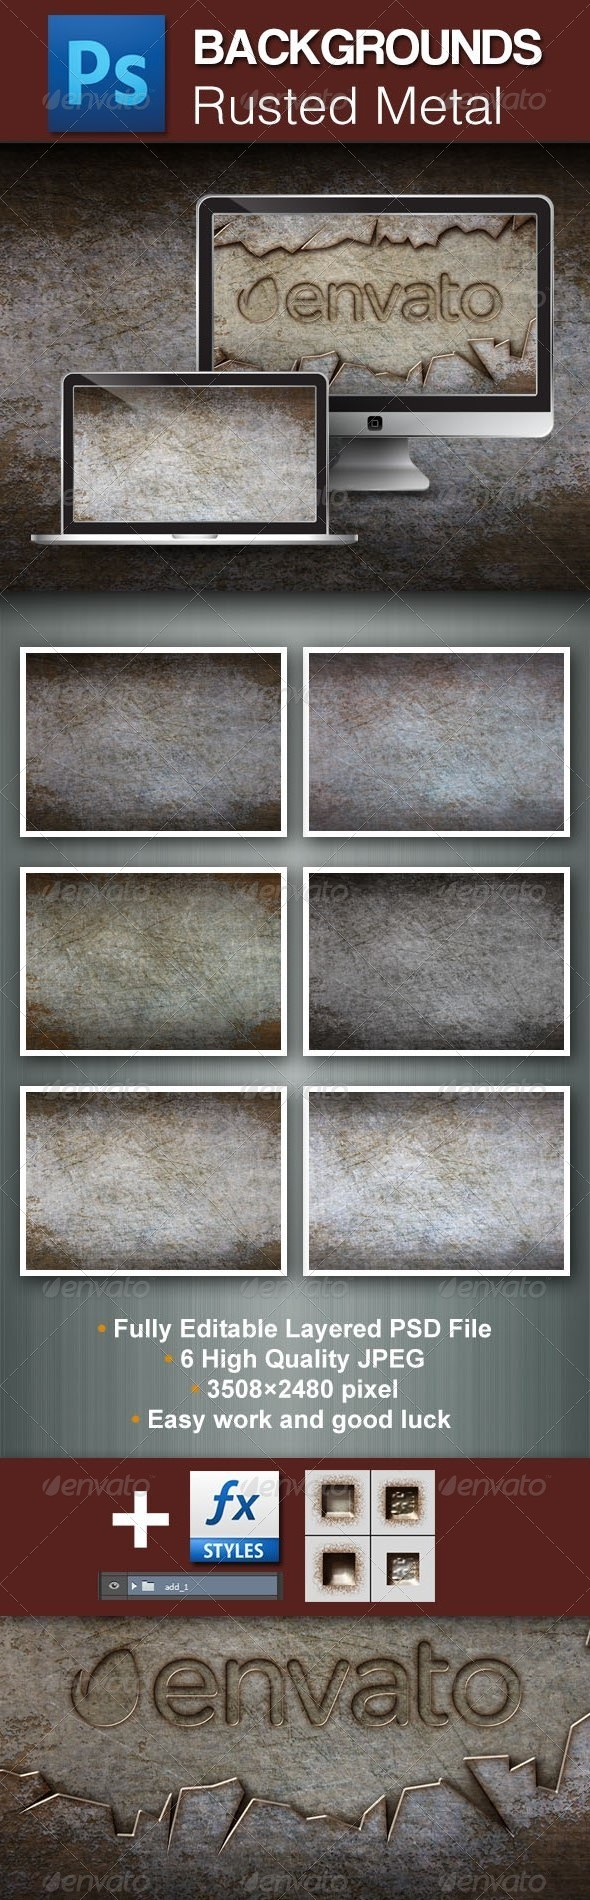 GraphicRiver Rusted Metal PSD Backgrounds 5650291